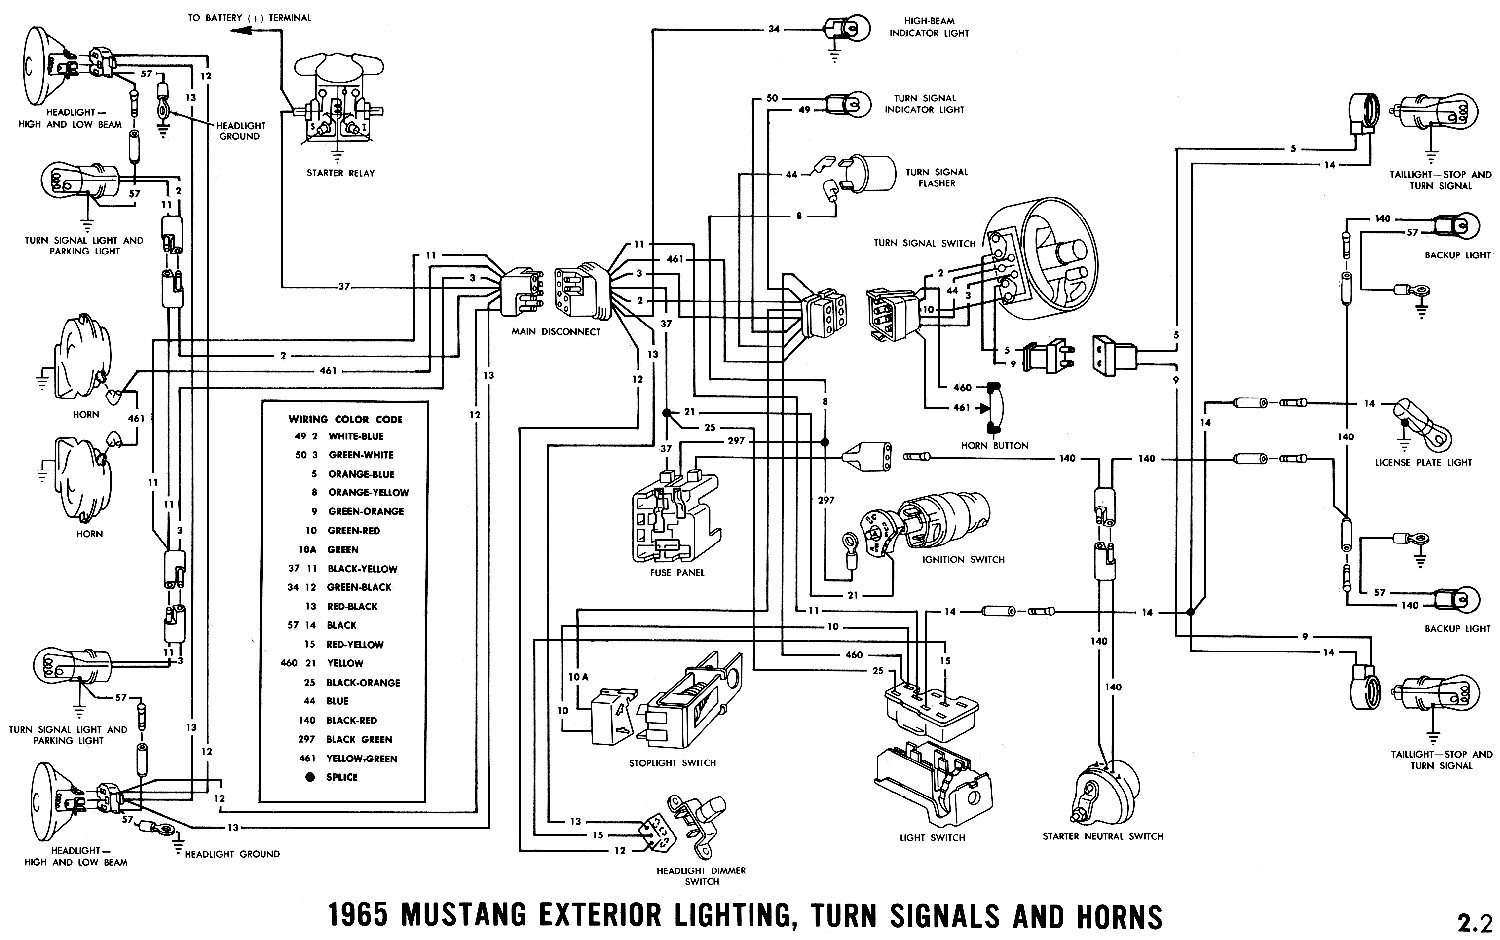 Stop Light Wiring Diagram 1964 Ford Electricity 1962 F100 Also On 1965 Mustang Diagrams Average Joe Restoration Rh Averagejoerestoration Com Truck Brake Lamp